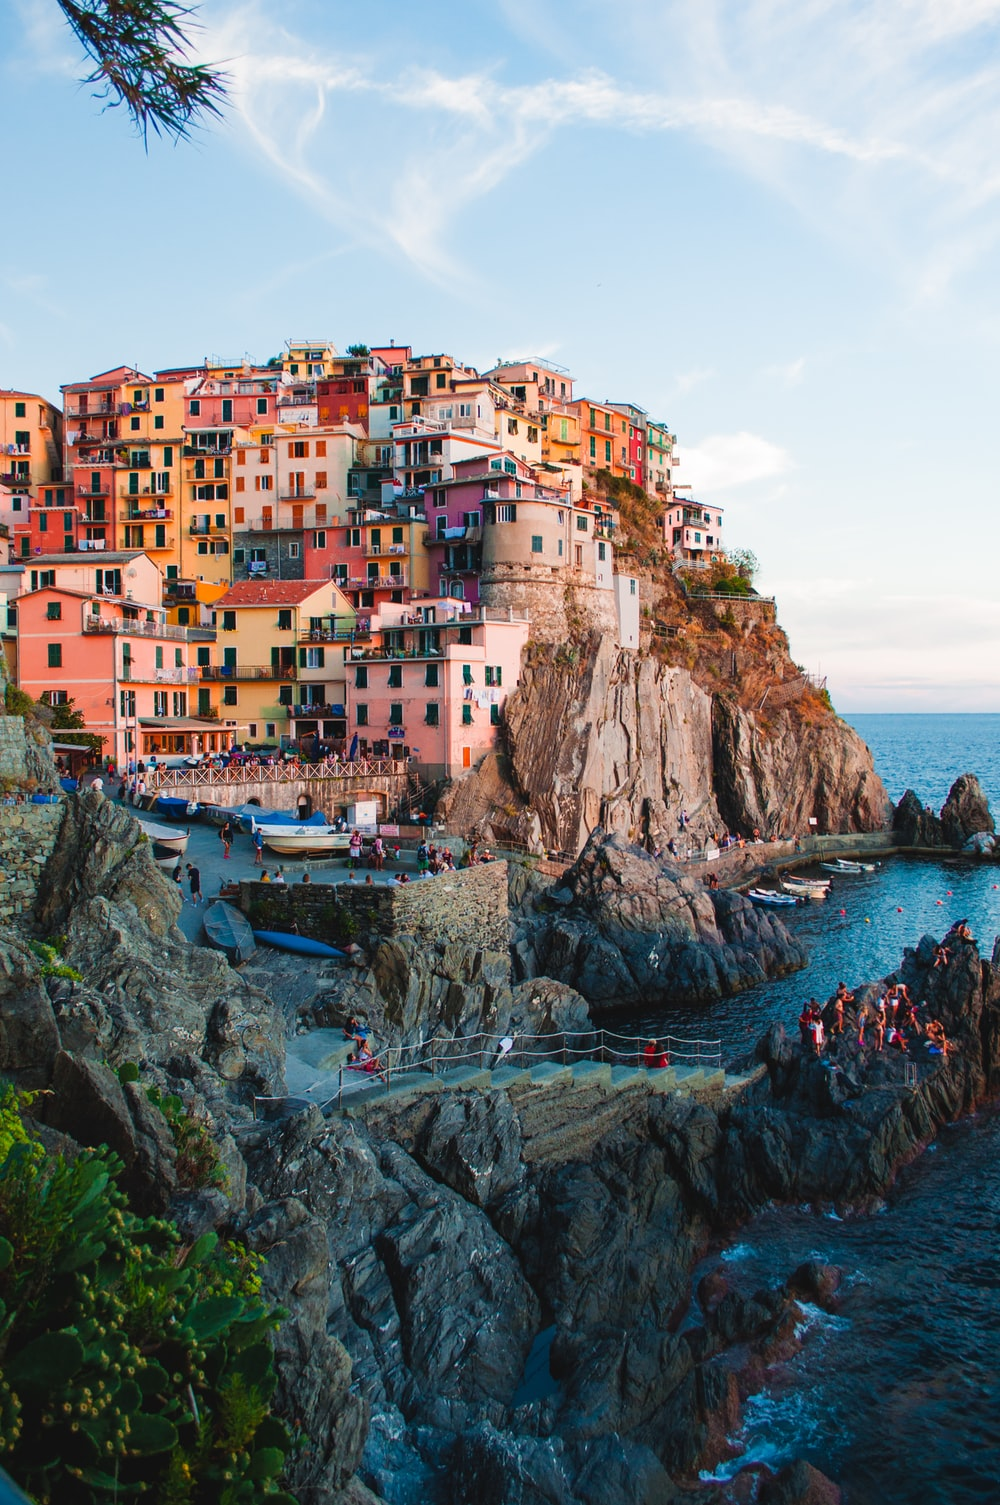 900 Italy Images Download Hd Pictures Photos On Unsplash